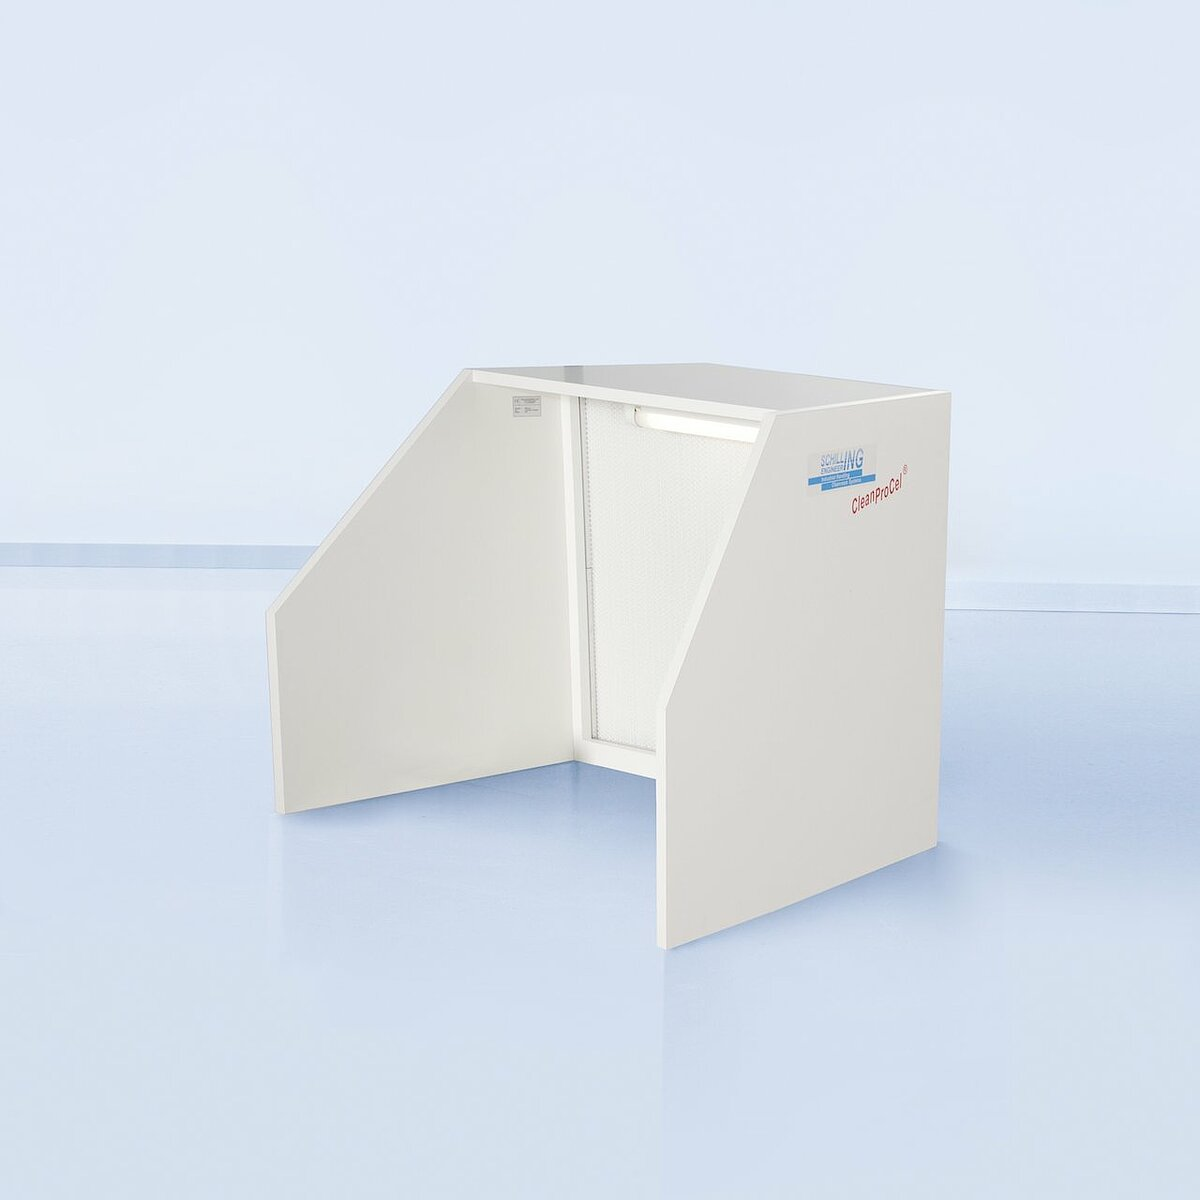 Horizontal flow tabletop unit made of melamine